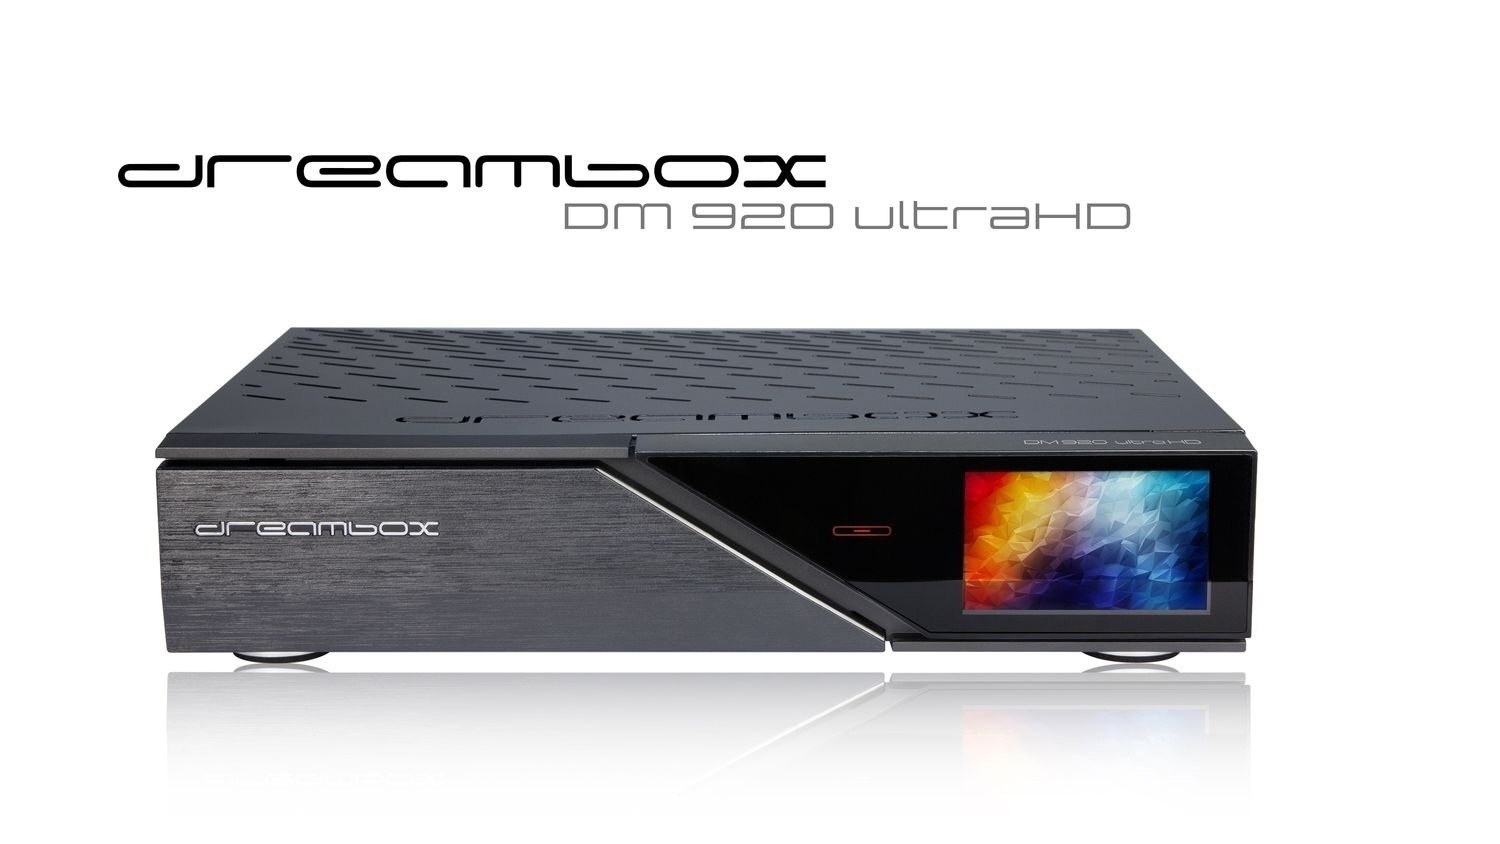 Dreambox 920 Ultra HD. 8 GB flash, Variable tuner configiration, FPGA technology on CI and fast Broadcom BCM45308X Chip.